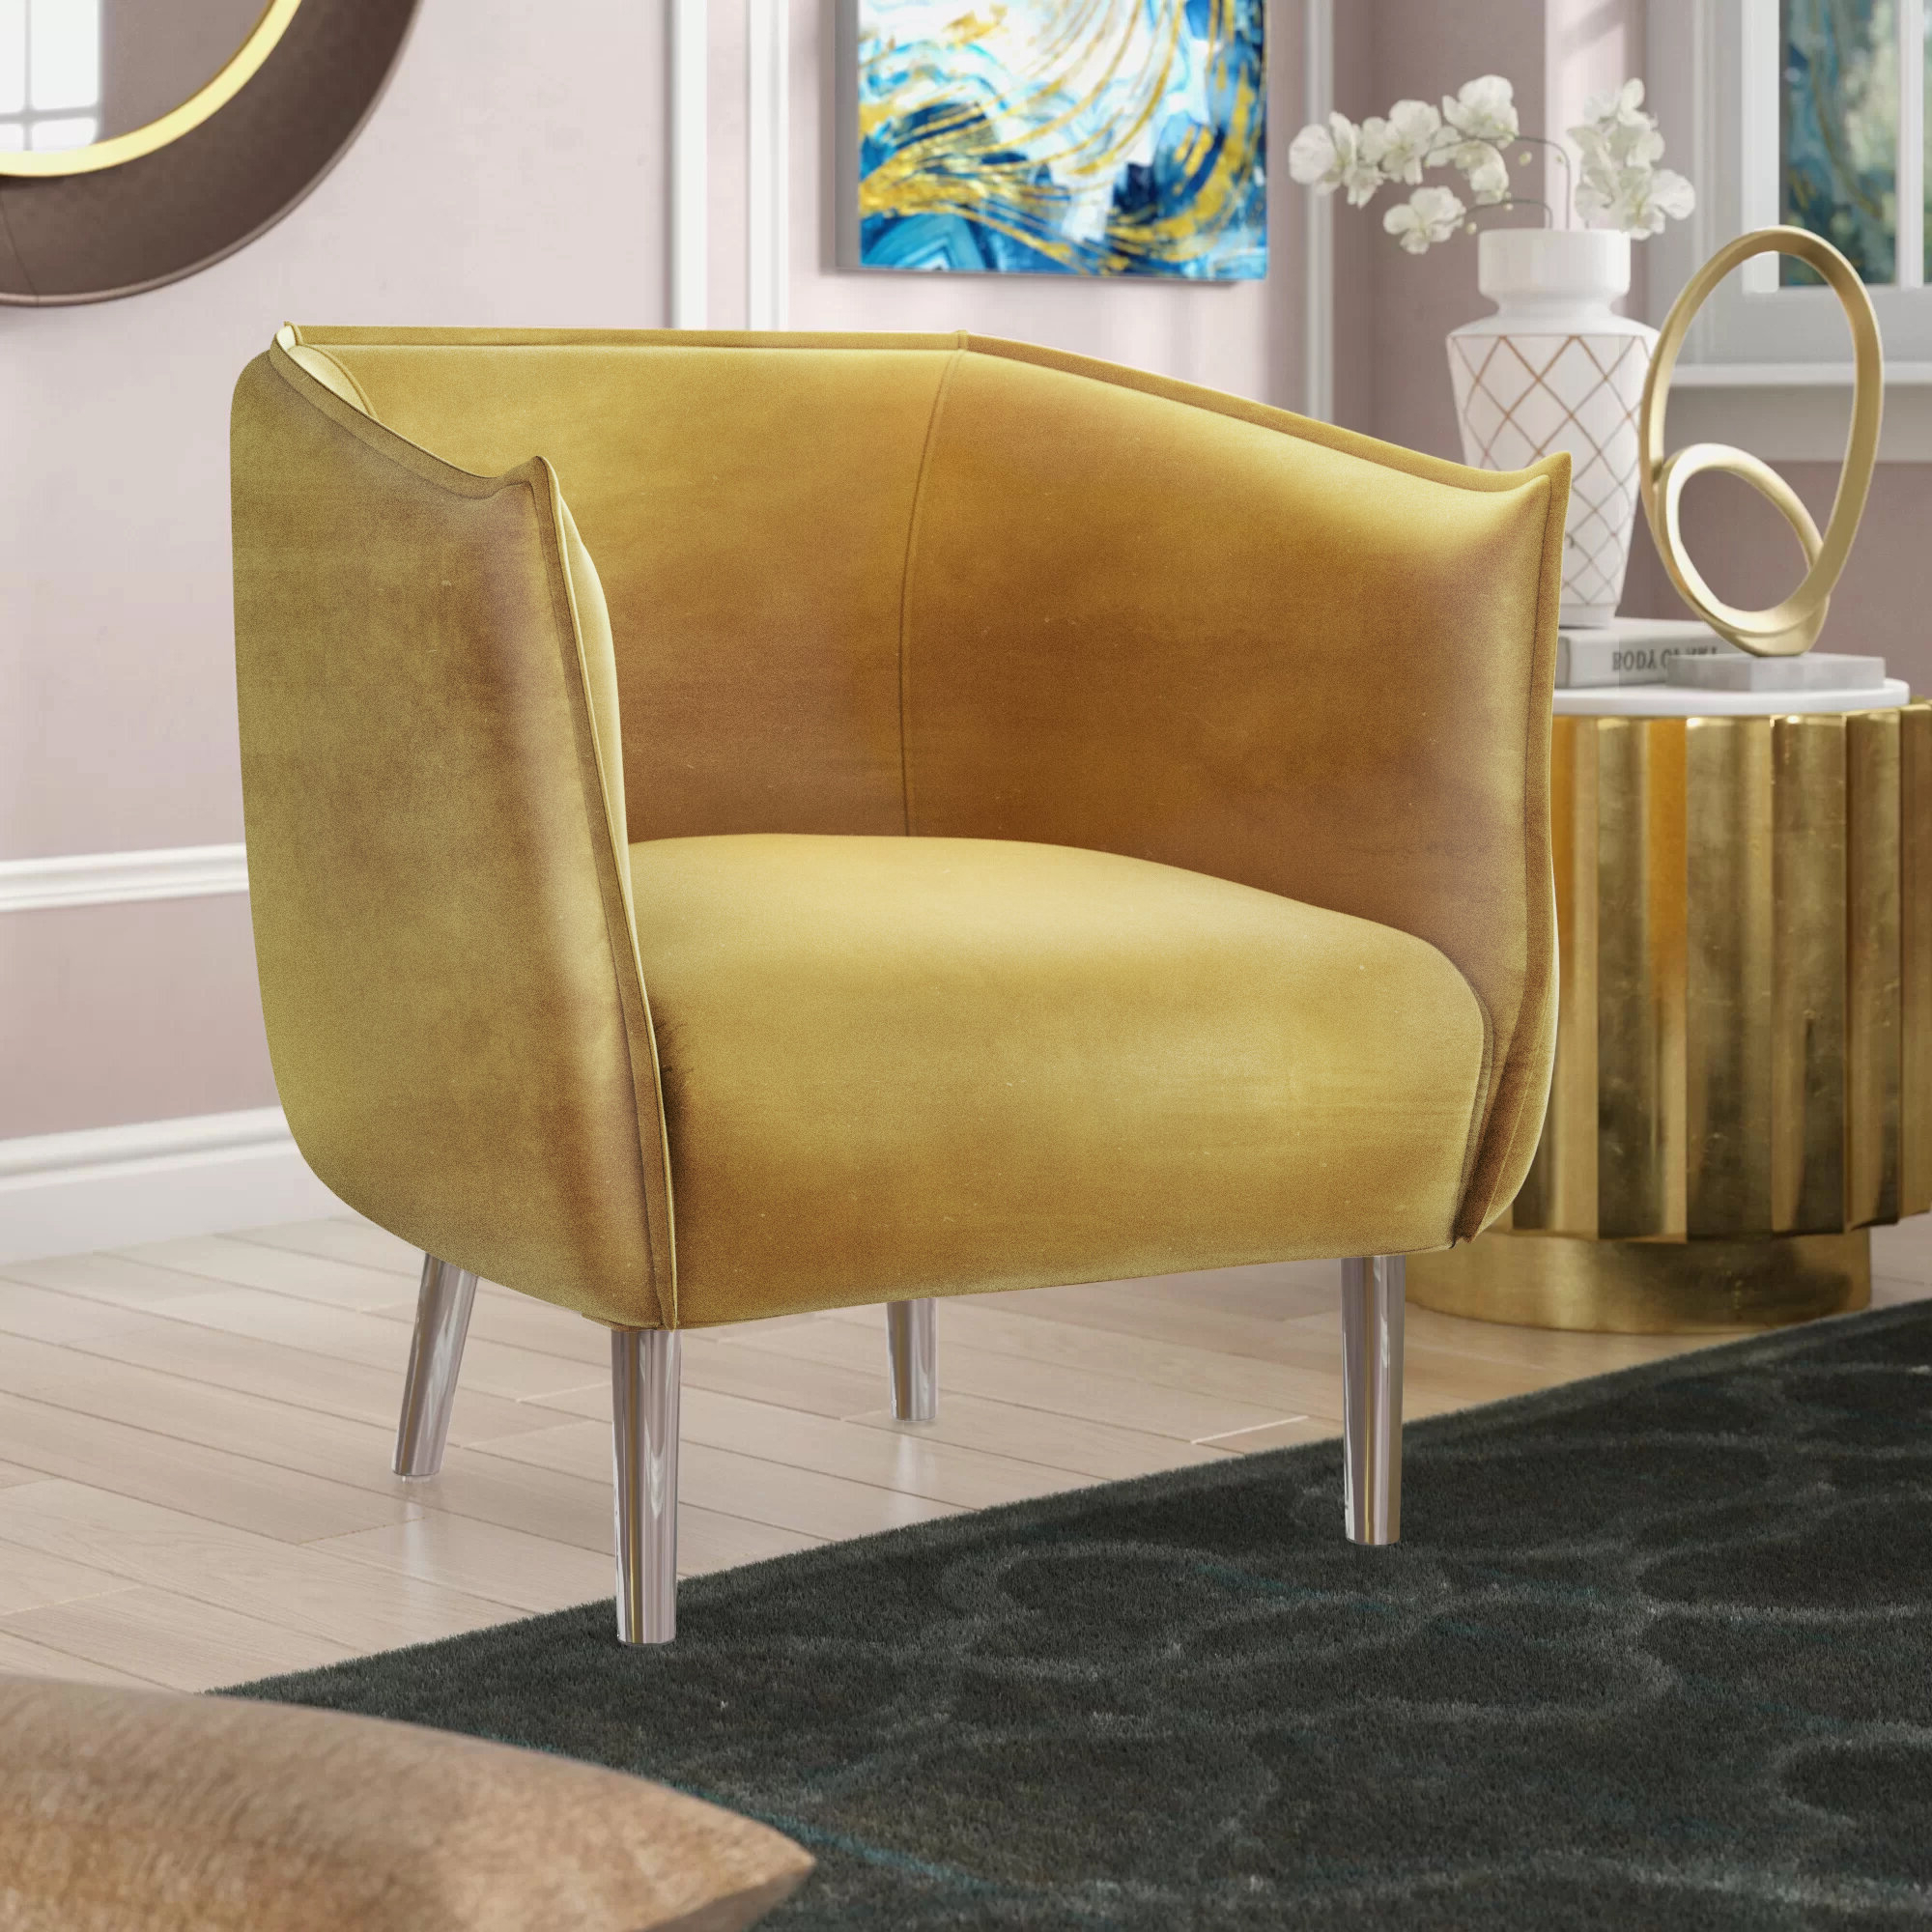 Famous Giguere Barrel Chairs For Bentonville (View 10 of 20)